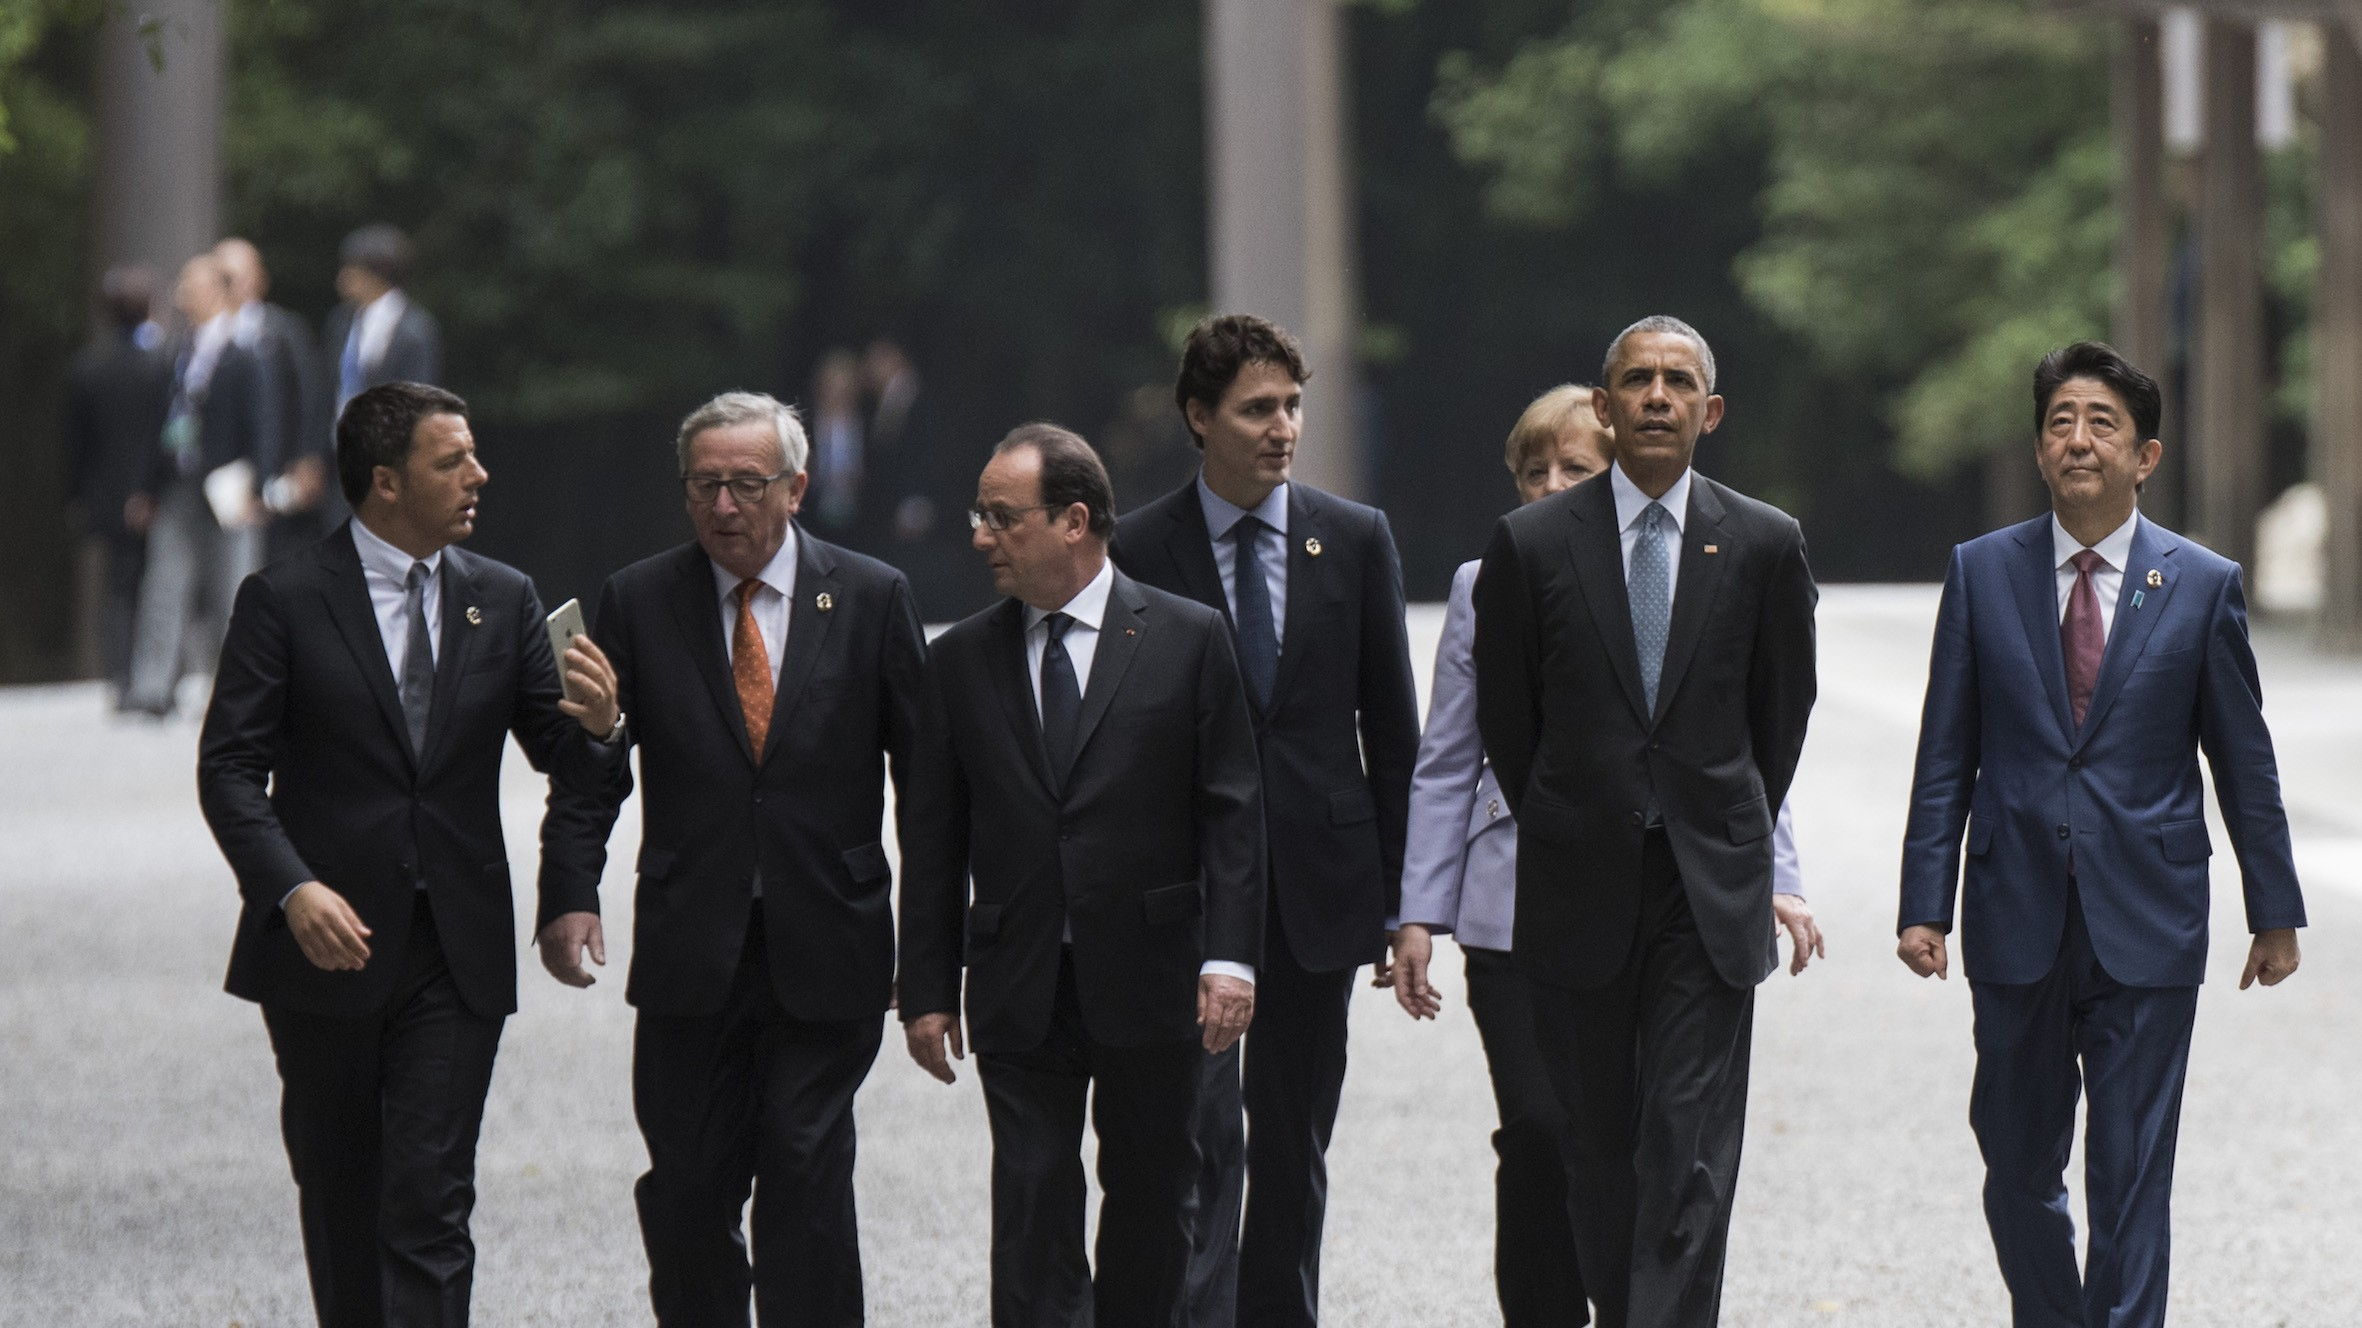 Trudeau Convinces G7 to Oppose Ransoms, as the Multi-Billion Dollar Kidnapping Industry Booms